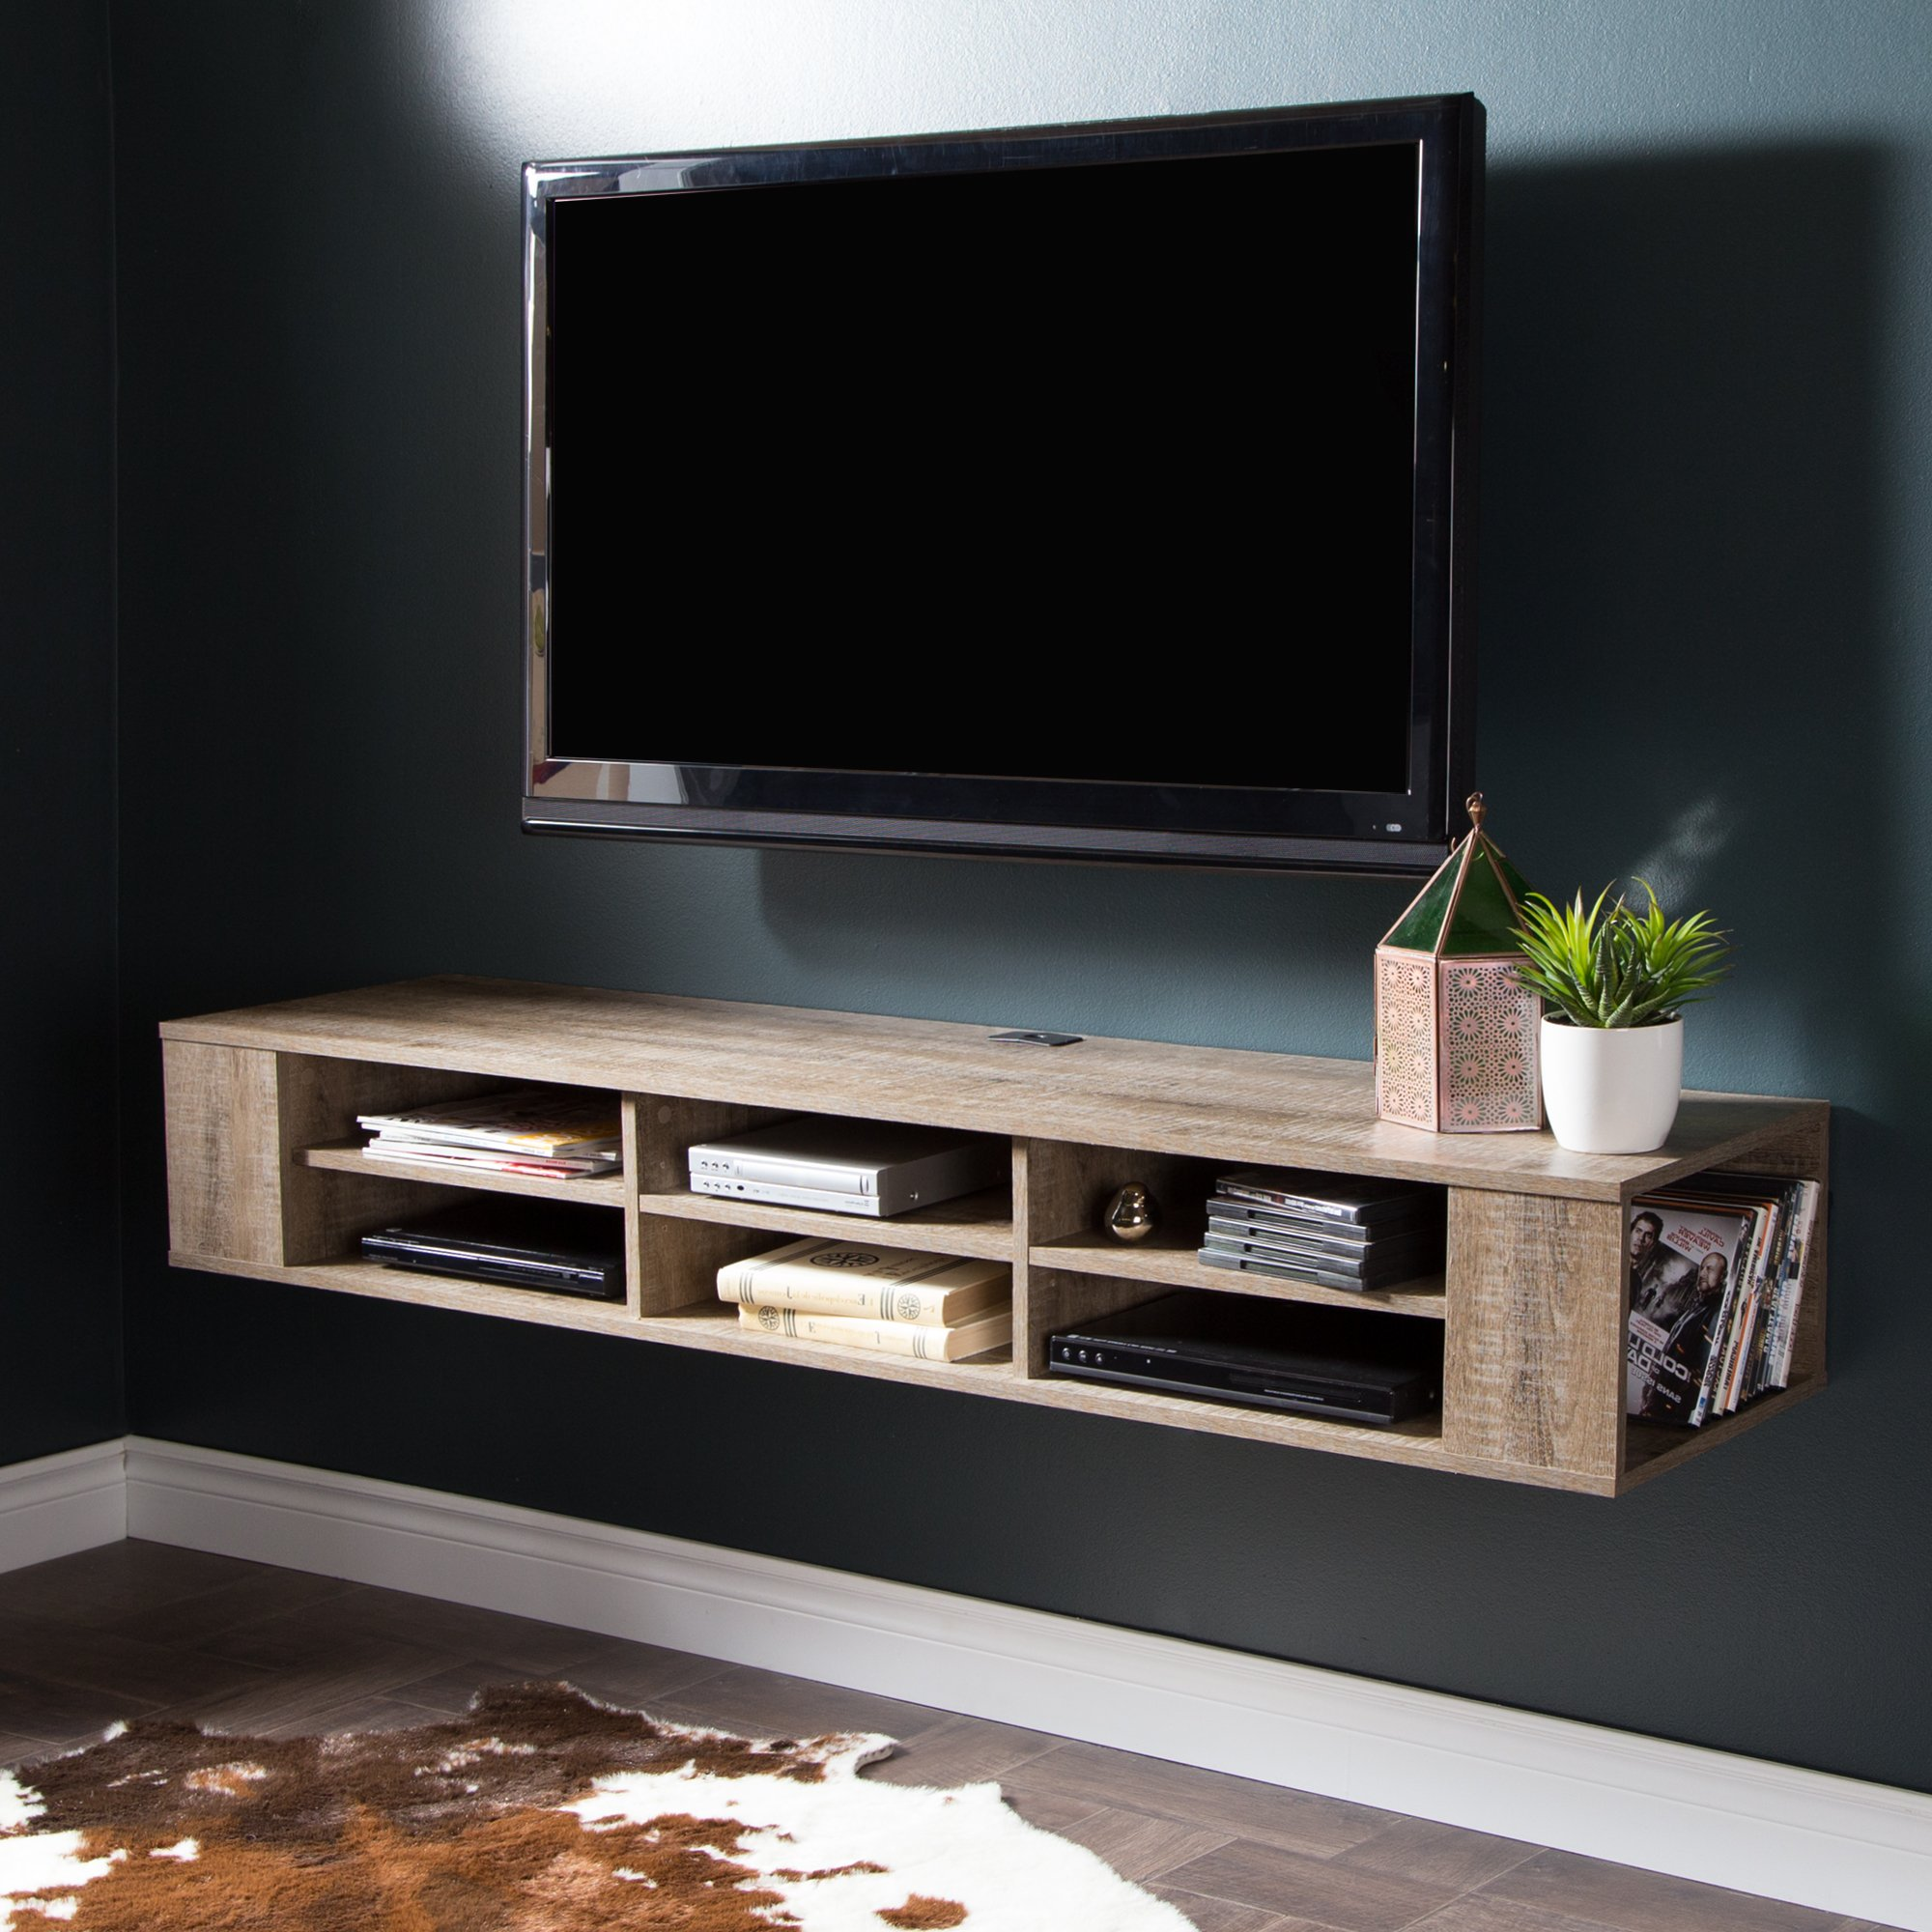 South Shore 9062677 City Life Wall Mounted Media Console, 66'', Weathered Oak by South Shore